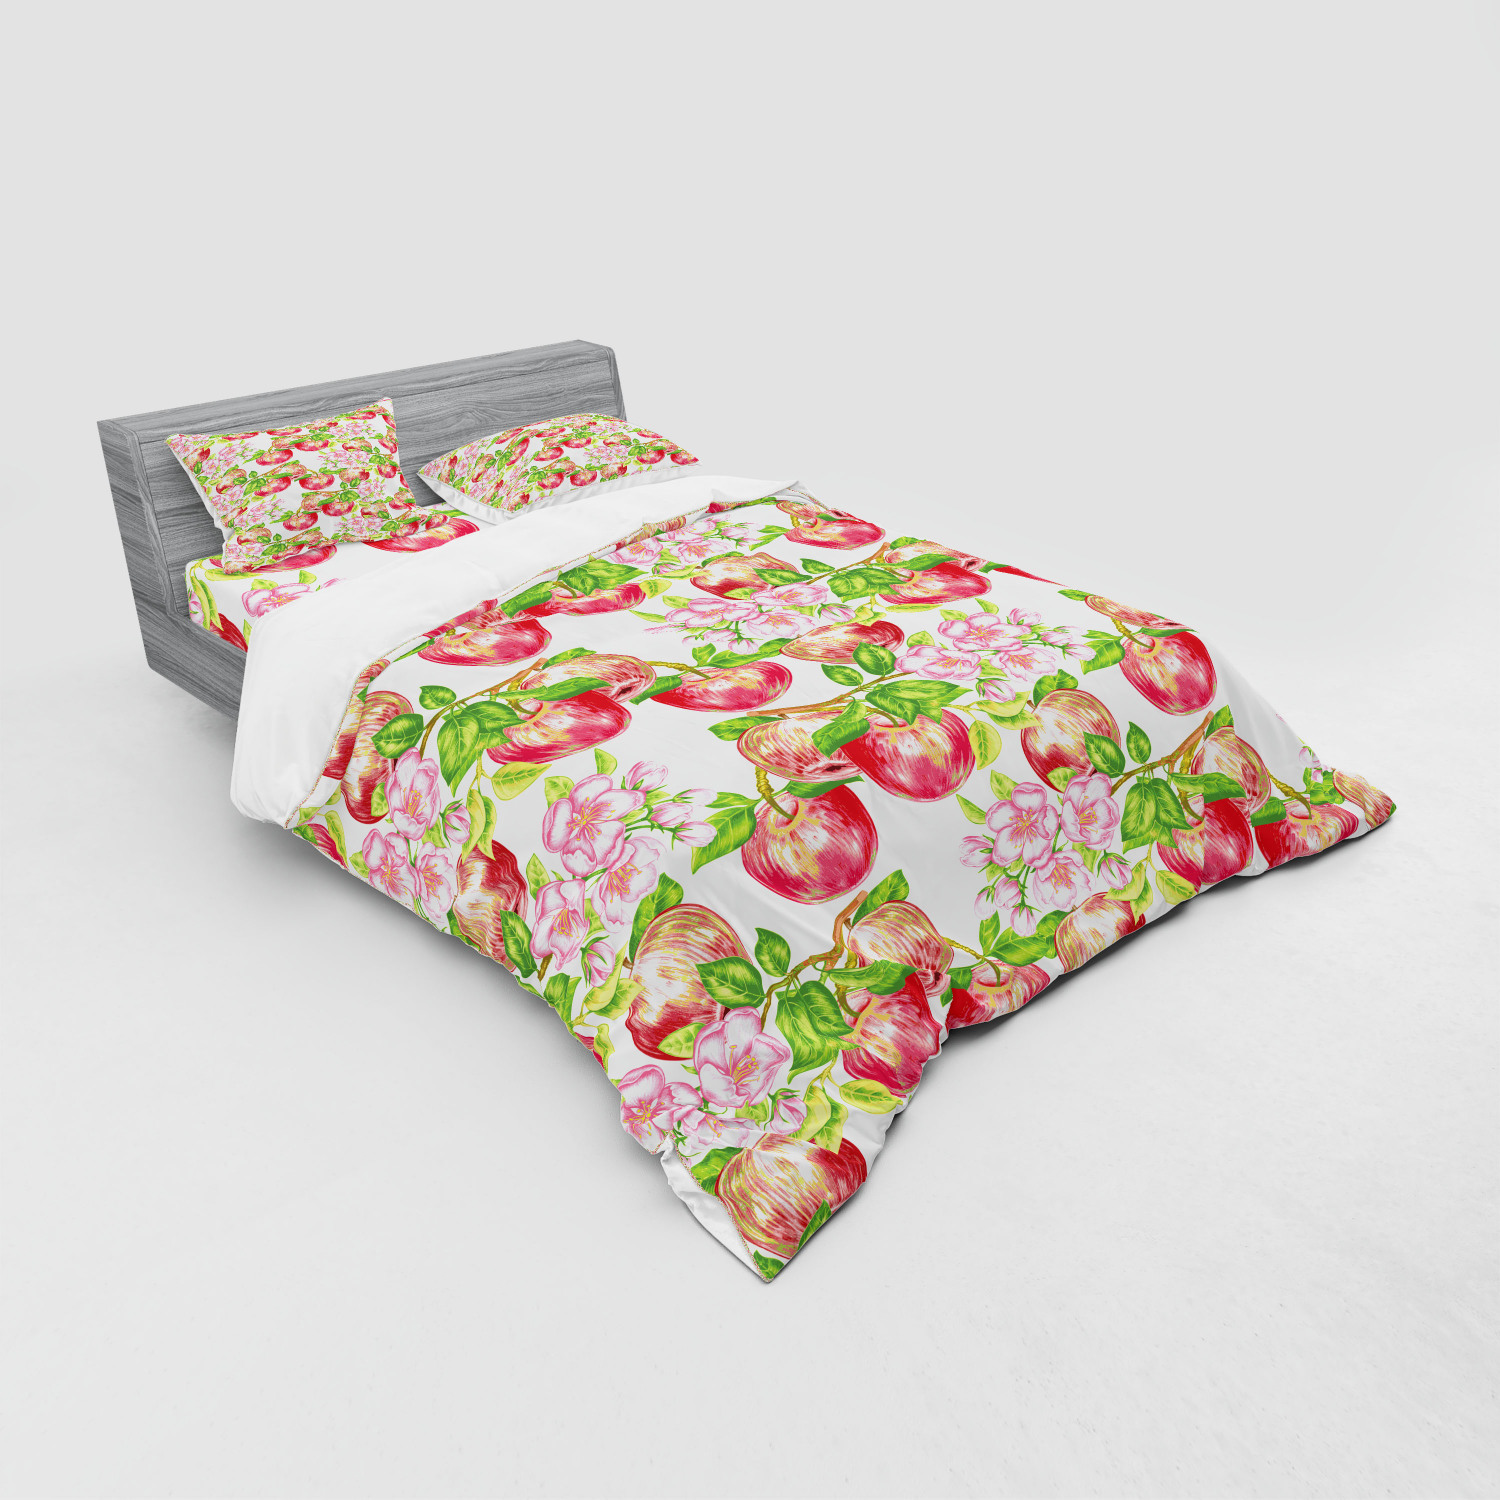 thumbnail 119 - Ambesonne Summer Bedding Set Duvet Cover Sham Fitted Sheet in 3 Sizes